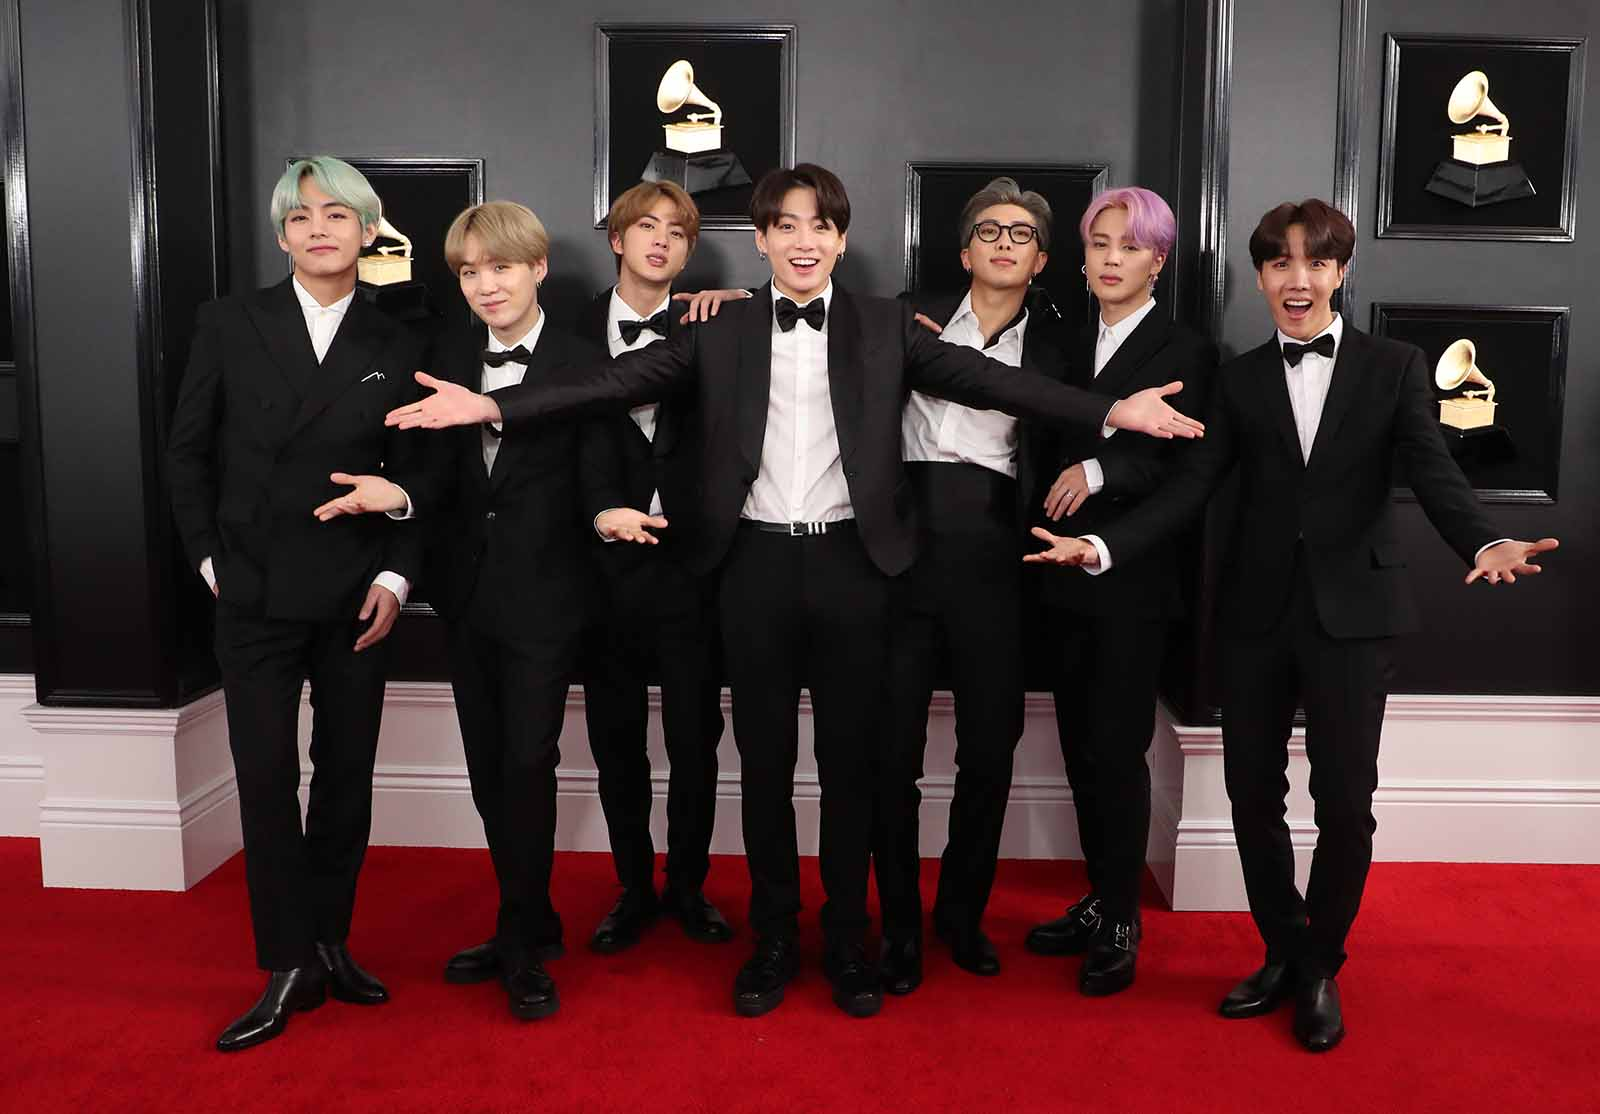 The entire world has fallen in love with BTS over the years, but even they had a humble debut. Get to know the beginnings of the K-pop legends.